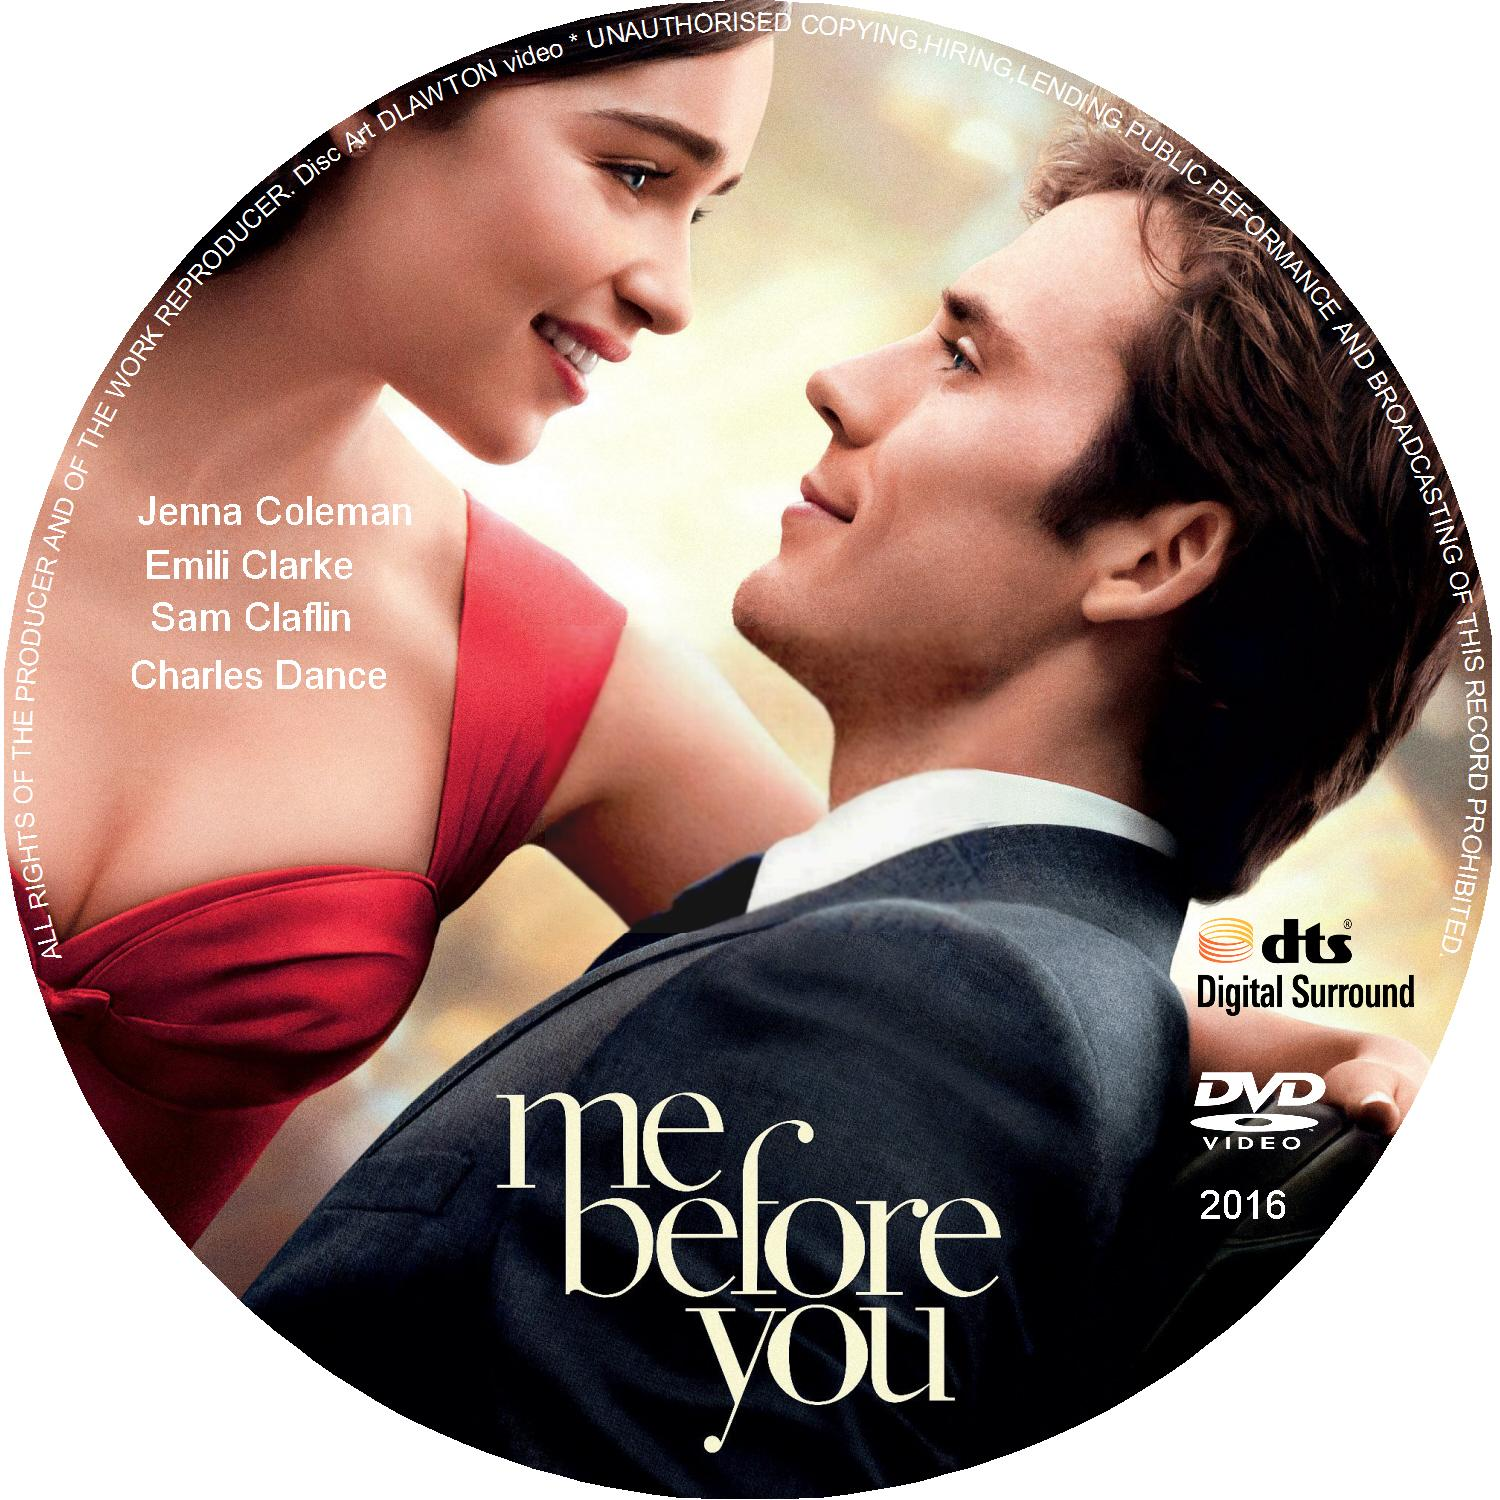 Me Before You 2016 Cd Dvd Covers Cover Century Over 500 000 Album Art Covers For Free